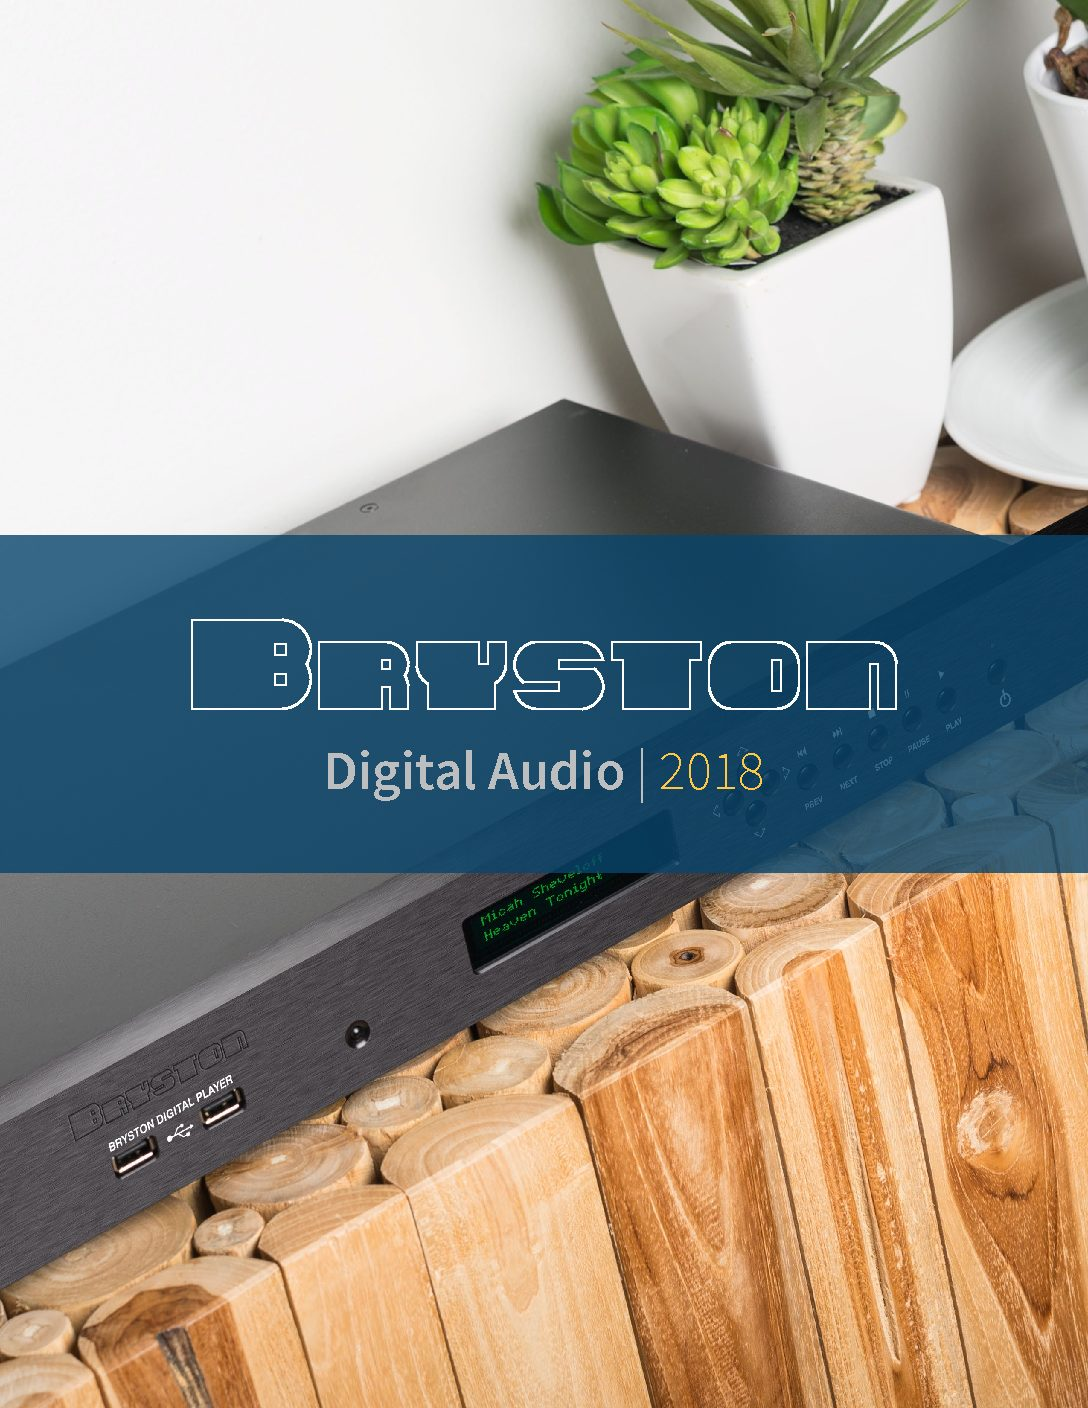 Digital Audio 2018